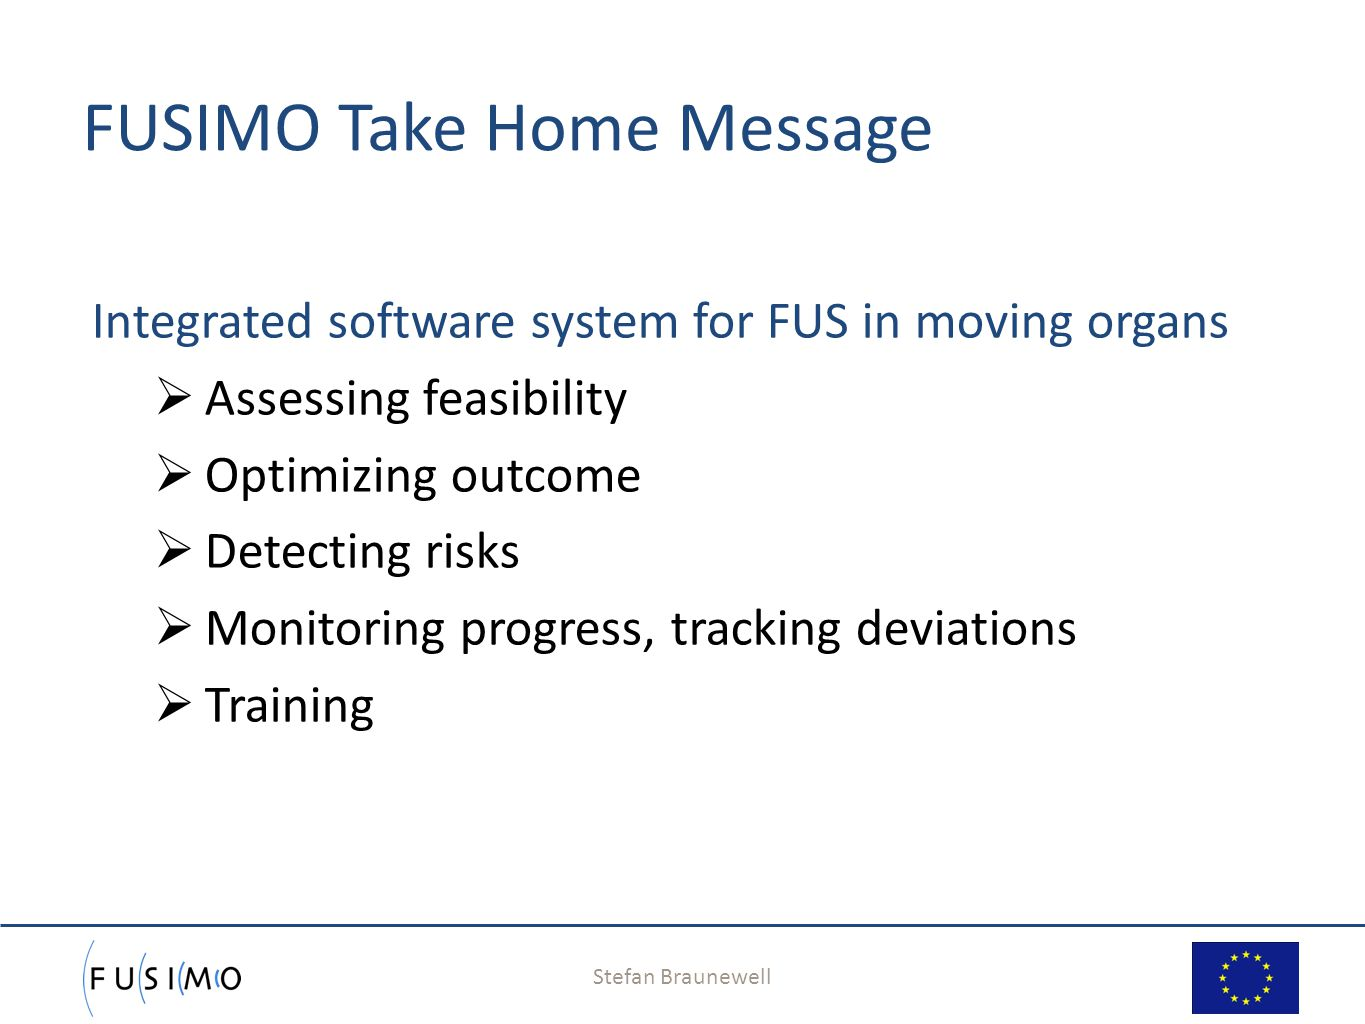 Stefan Braunewell 14 FUSIMO Take Home Message Integrated software system for FUS in moving organs  Assessing feasibility  Optimizing outcome  Detec